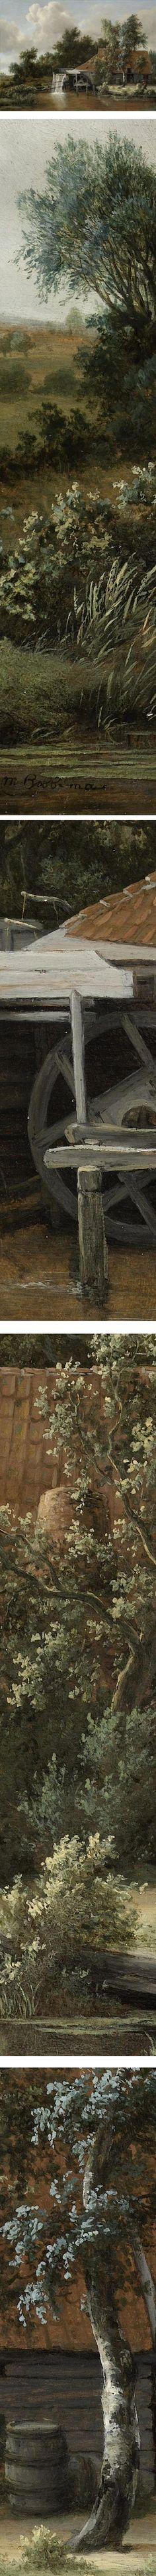 Eye Candy for Today: Meindert Hobbema watermill